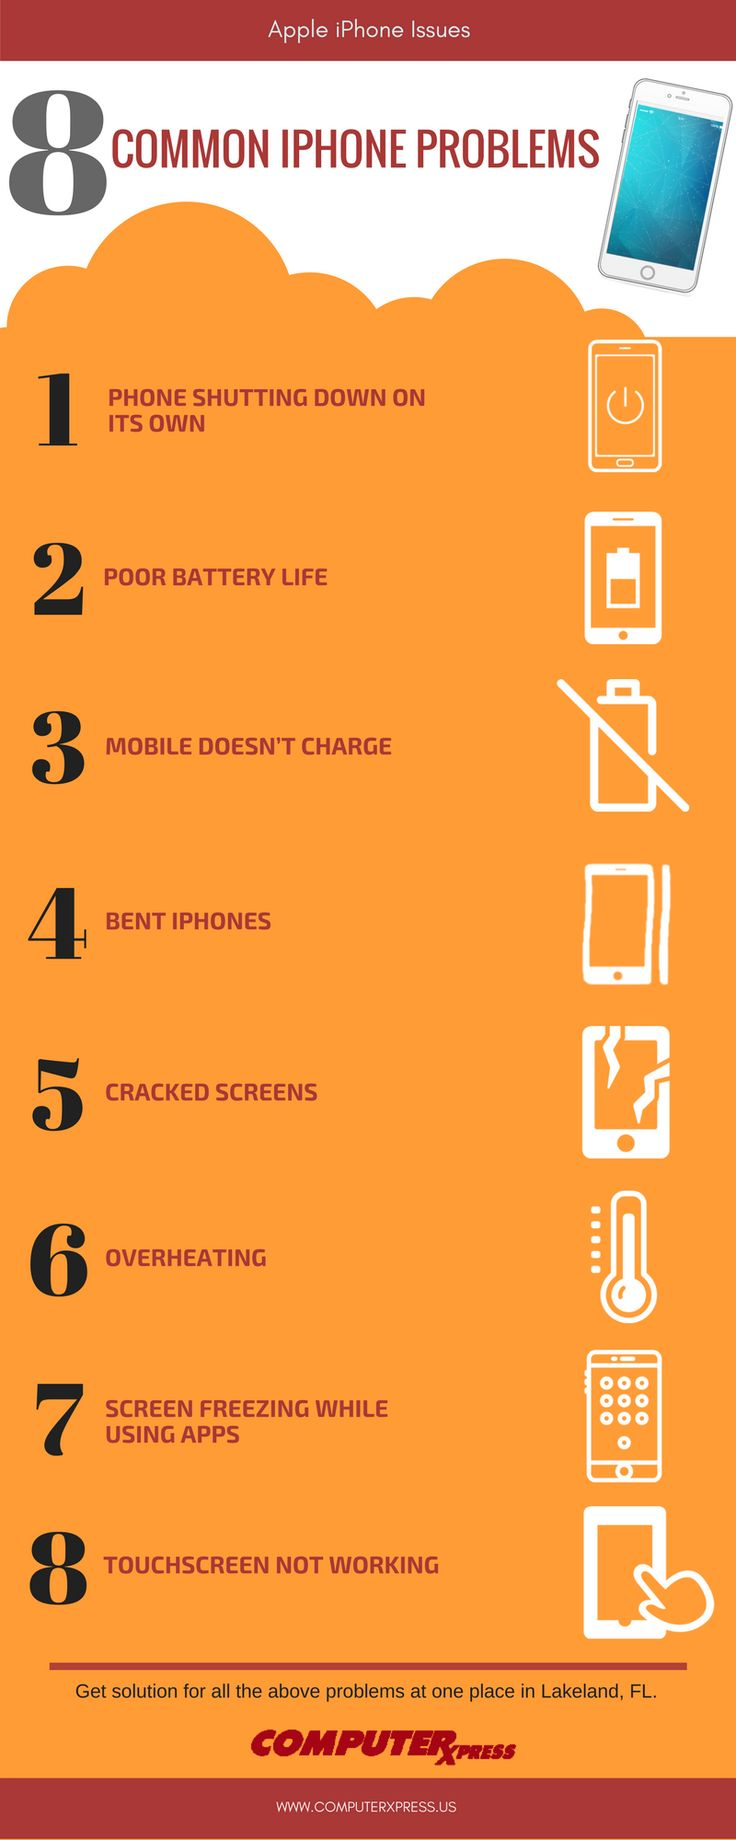 9 best infographics images on pinterest apple iphone computer apple iphone could have certain common problems like phone shutting down on its own poor battery life etc by some of the problems could be corrected buycottarizona Image collections